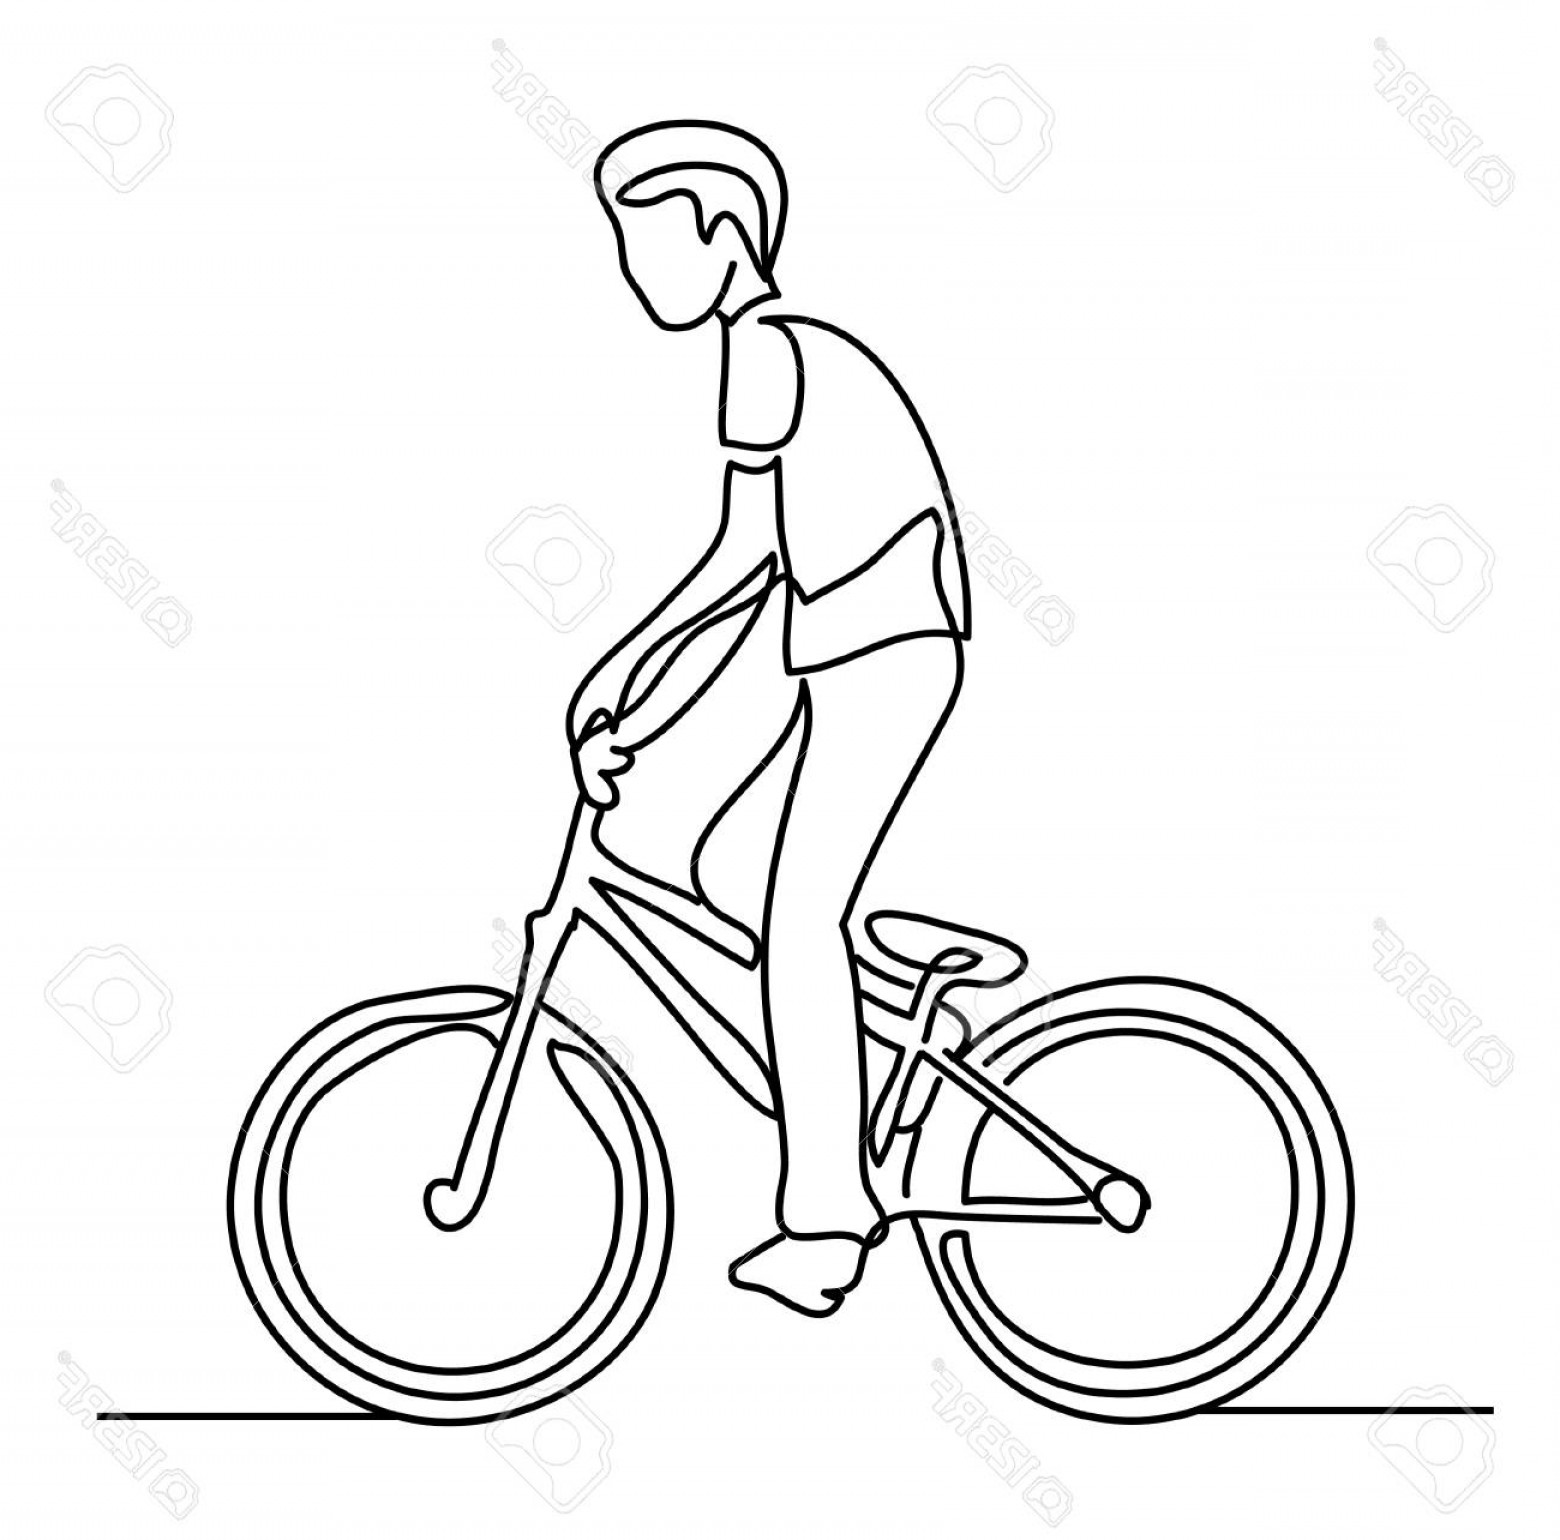 Indoor Cycling Bike Vector: Photostock Vector Continuous Line Drawing Boy On Bike Vector Illustration People In The Park Sketch